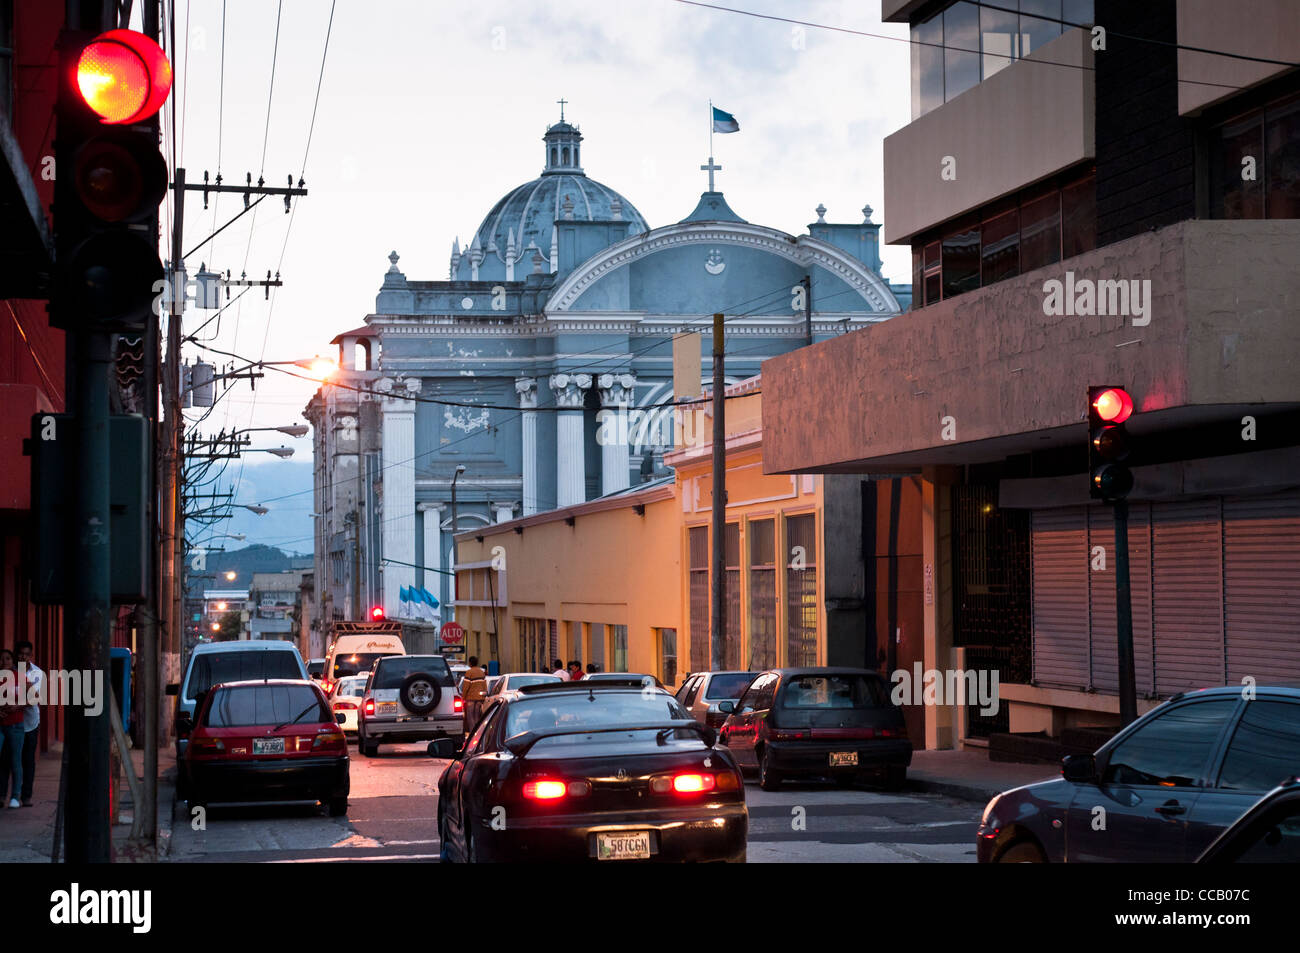 Sunset in the historical center of Guatemala City, Guatemala, Central America. - Stock Image